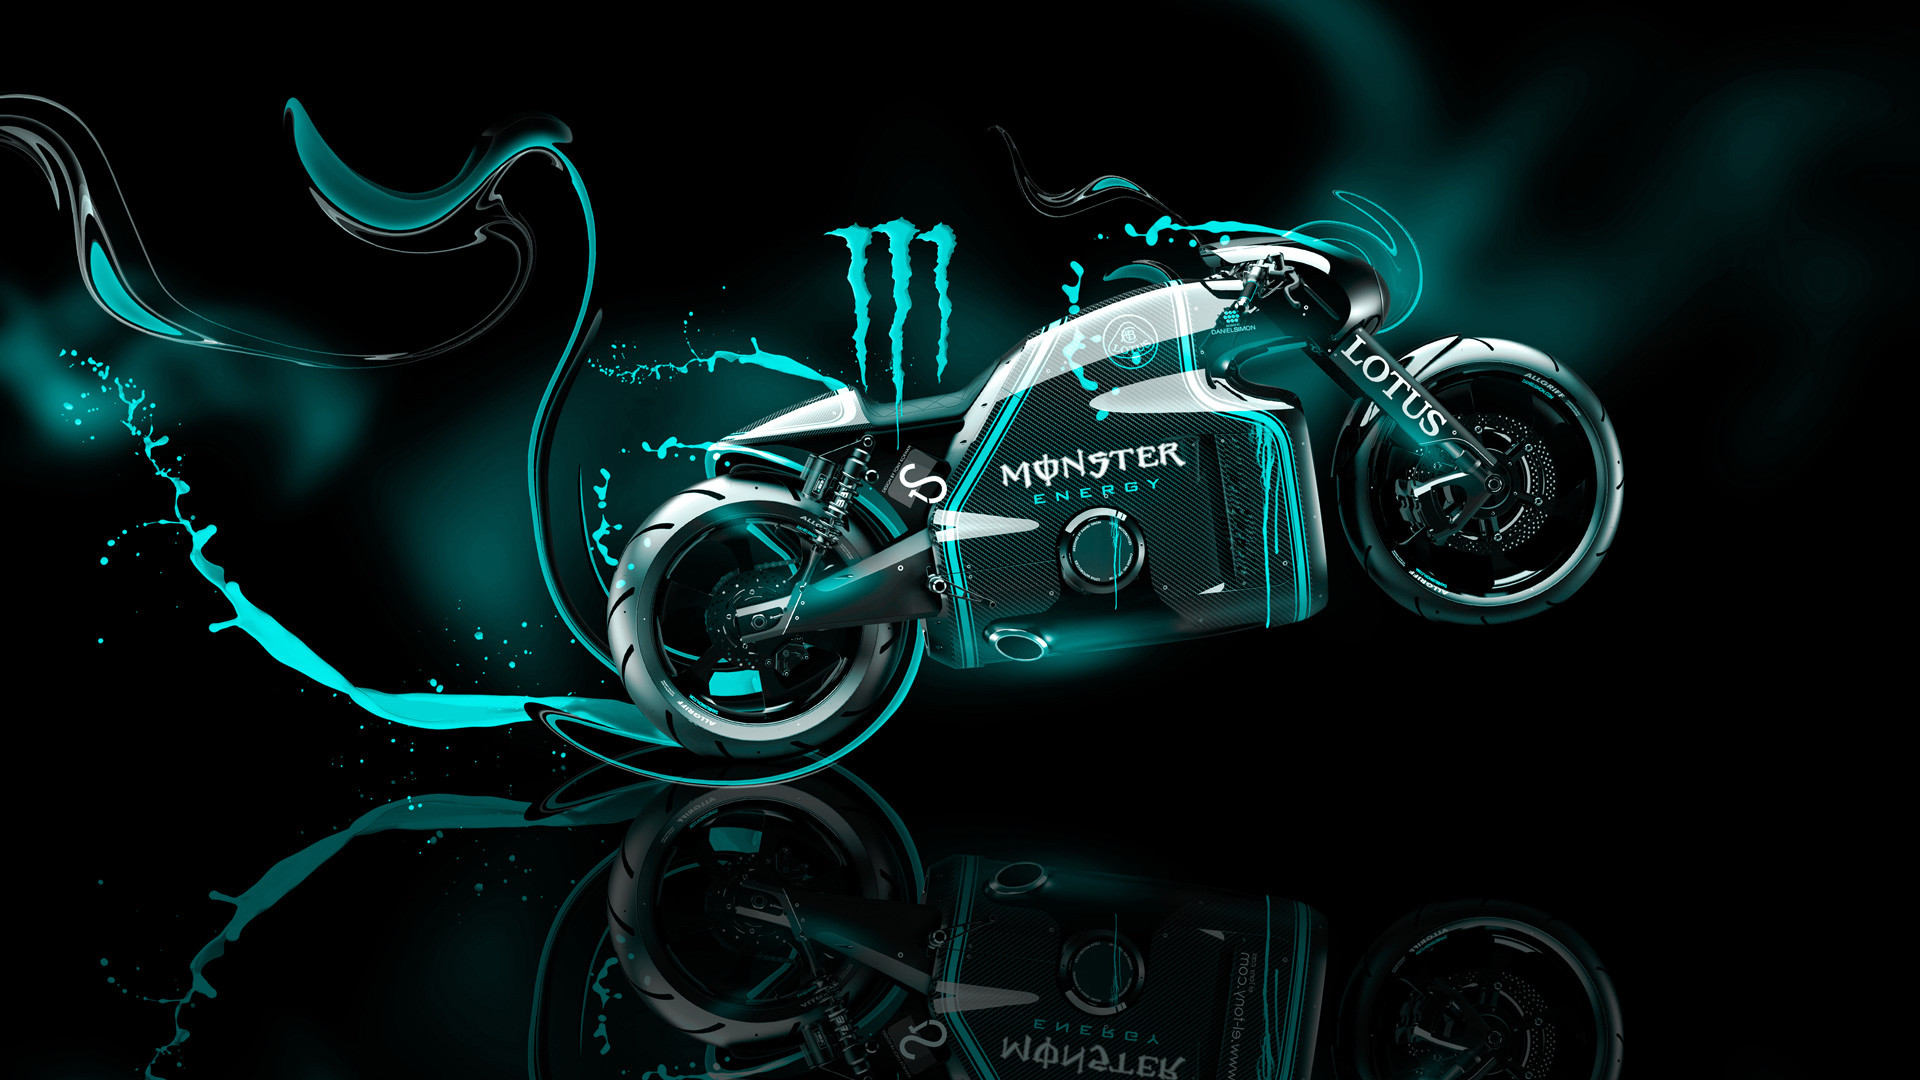 HD Monster Energy Wallpapers 1366Ãu2014768 Monster Pictures Wallpapers .